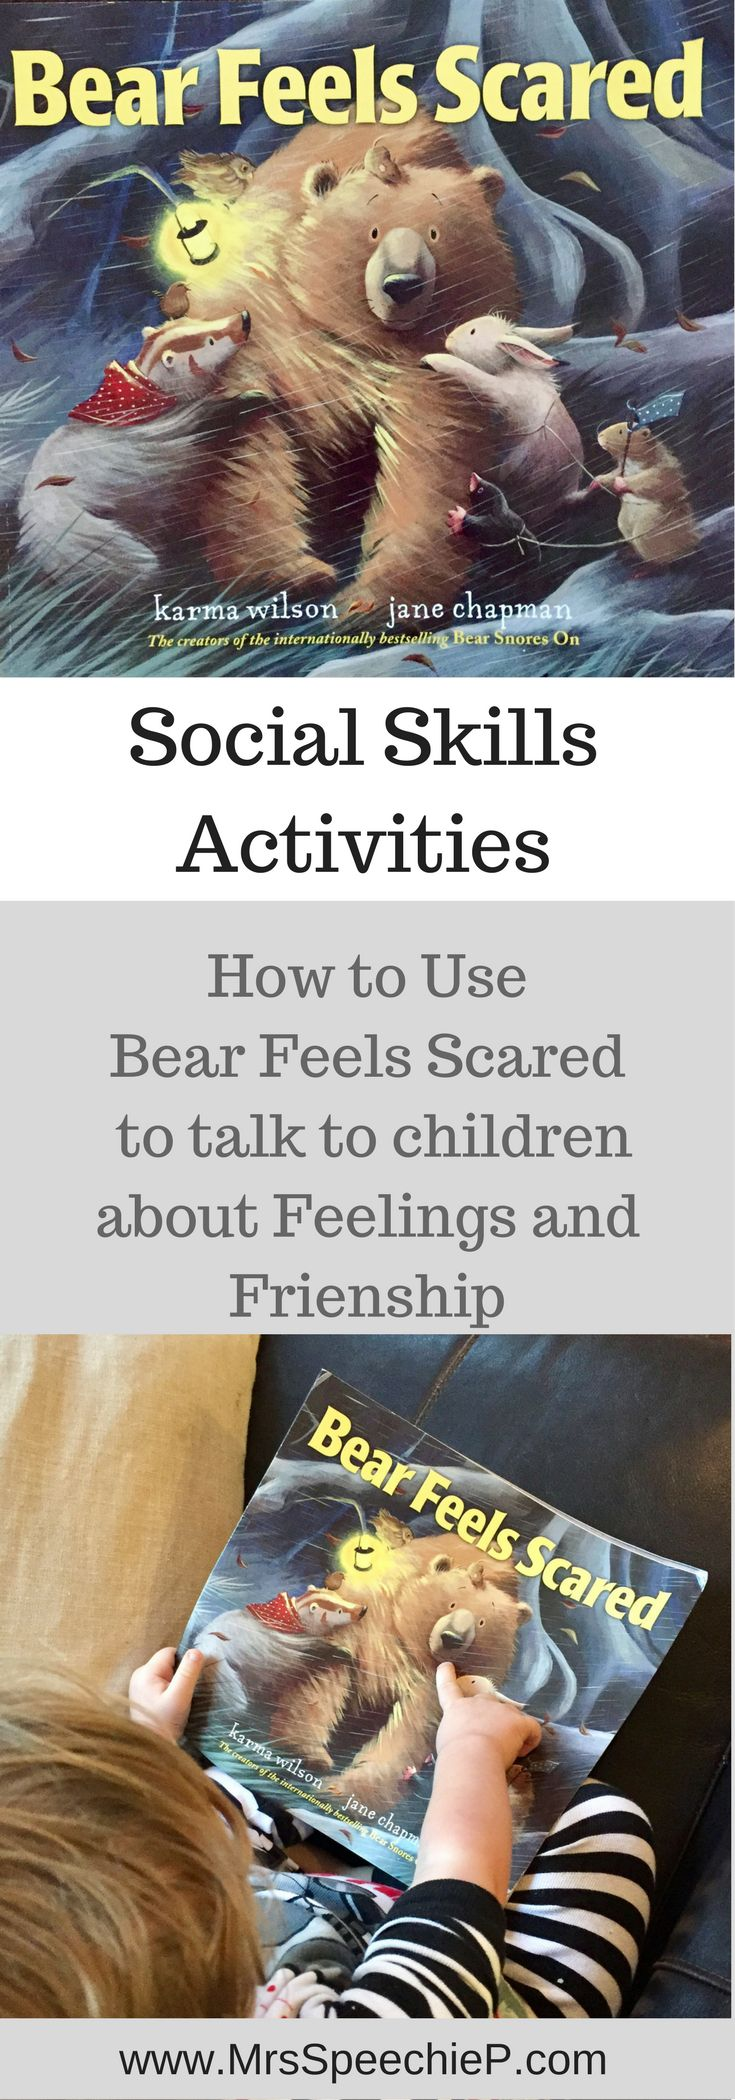 Help your child develop friendships and understand emotions using Bear Feels Scared.